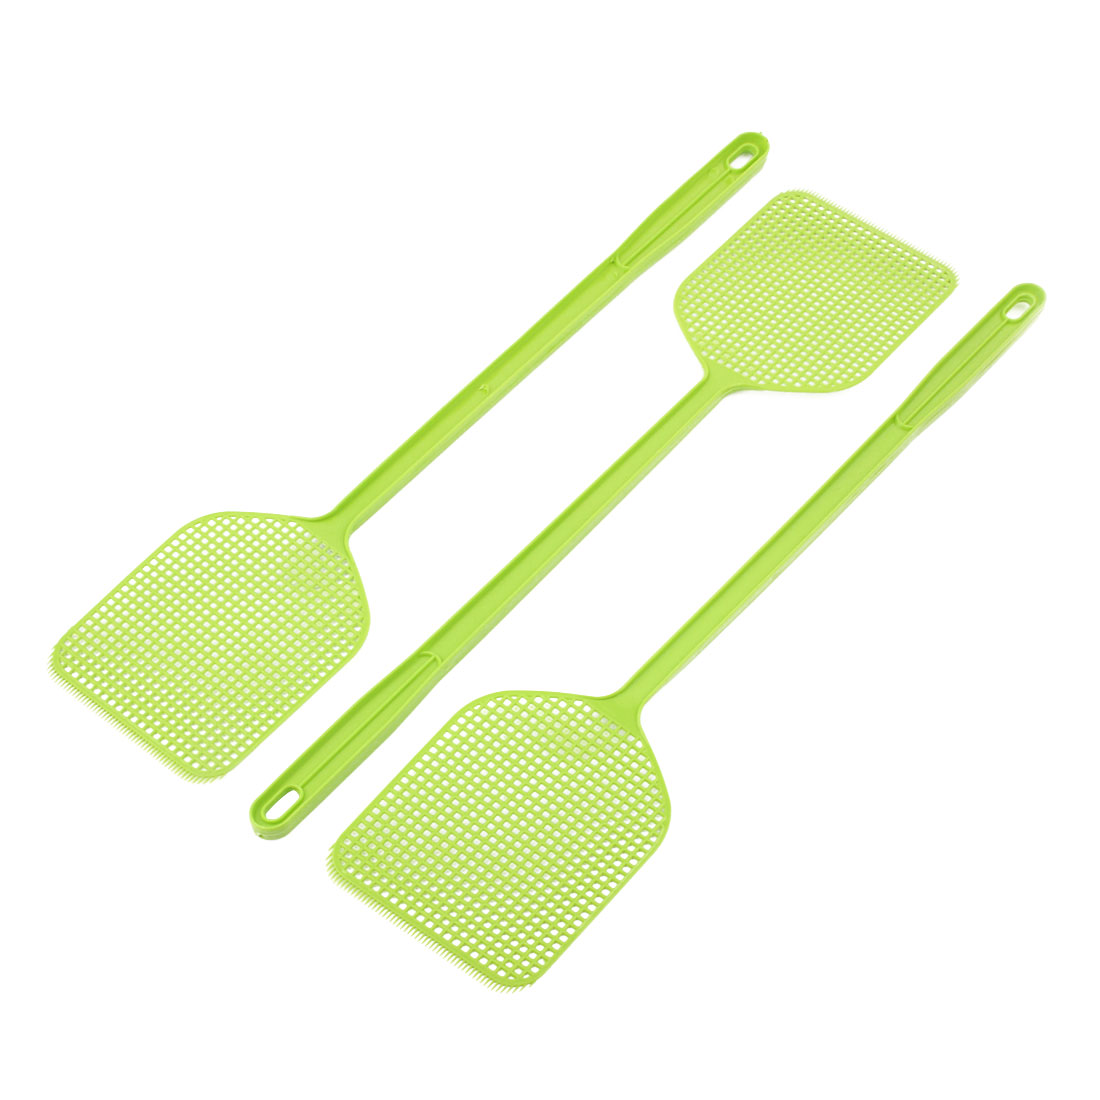 3pcs Yellowgreen Plastic Fly Swatter Bug Mosquito Insect Killer Catcher 45cm